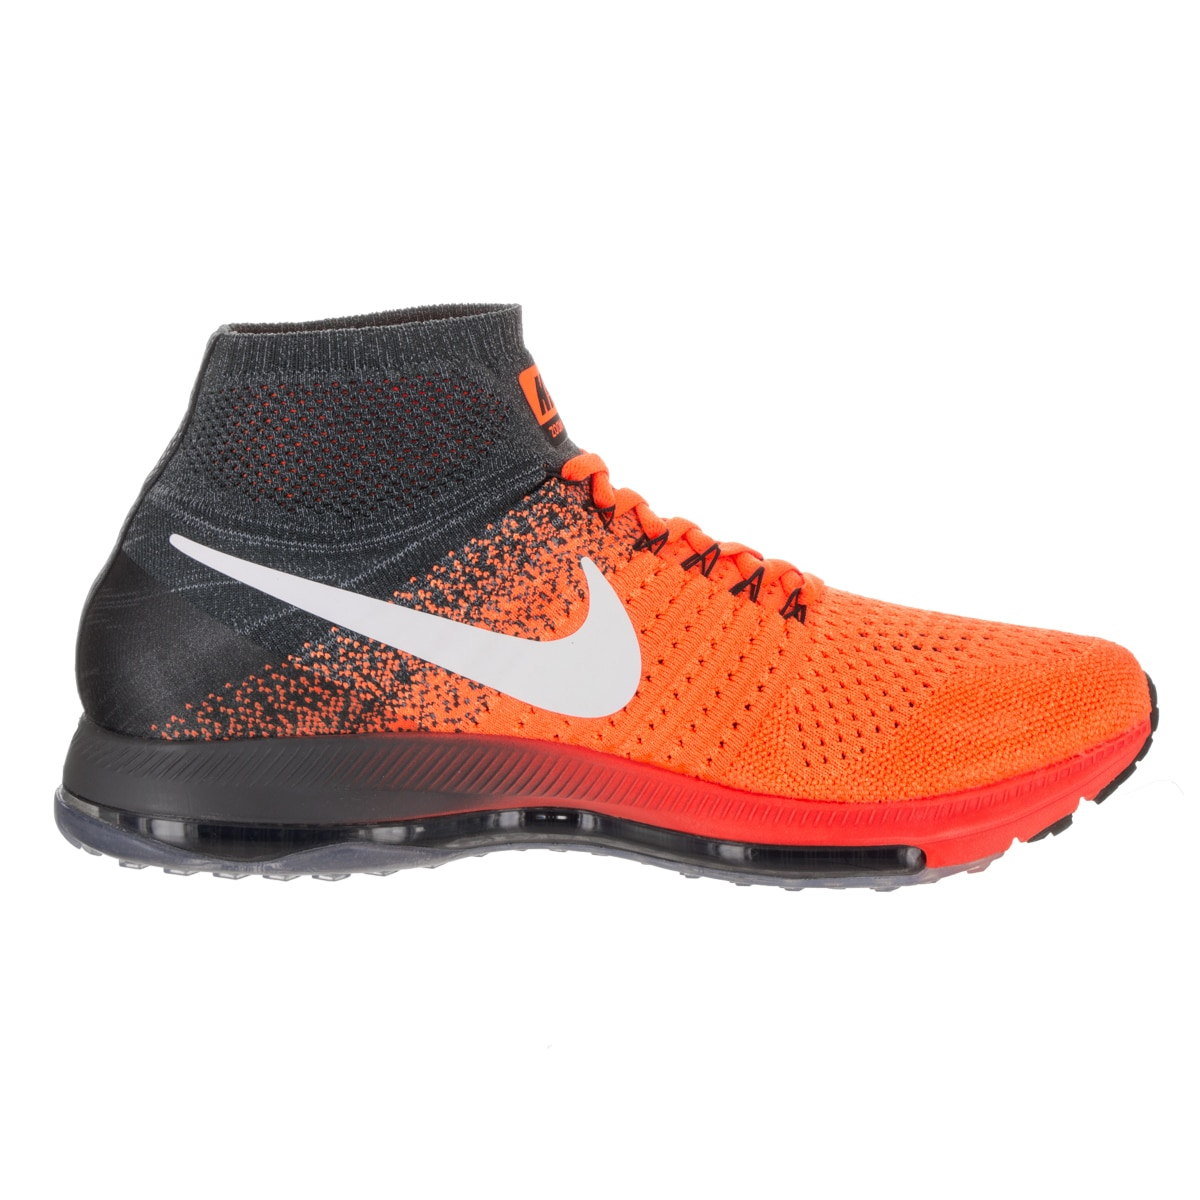 48230d873a5e Shop Nike Men s Zoom All Out Flyknit Running Shoes - Free Shipping Today -  Overstock - 13814513